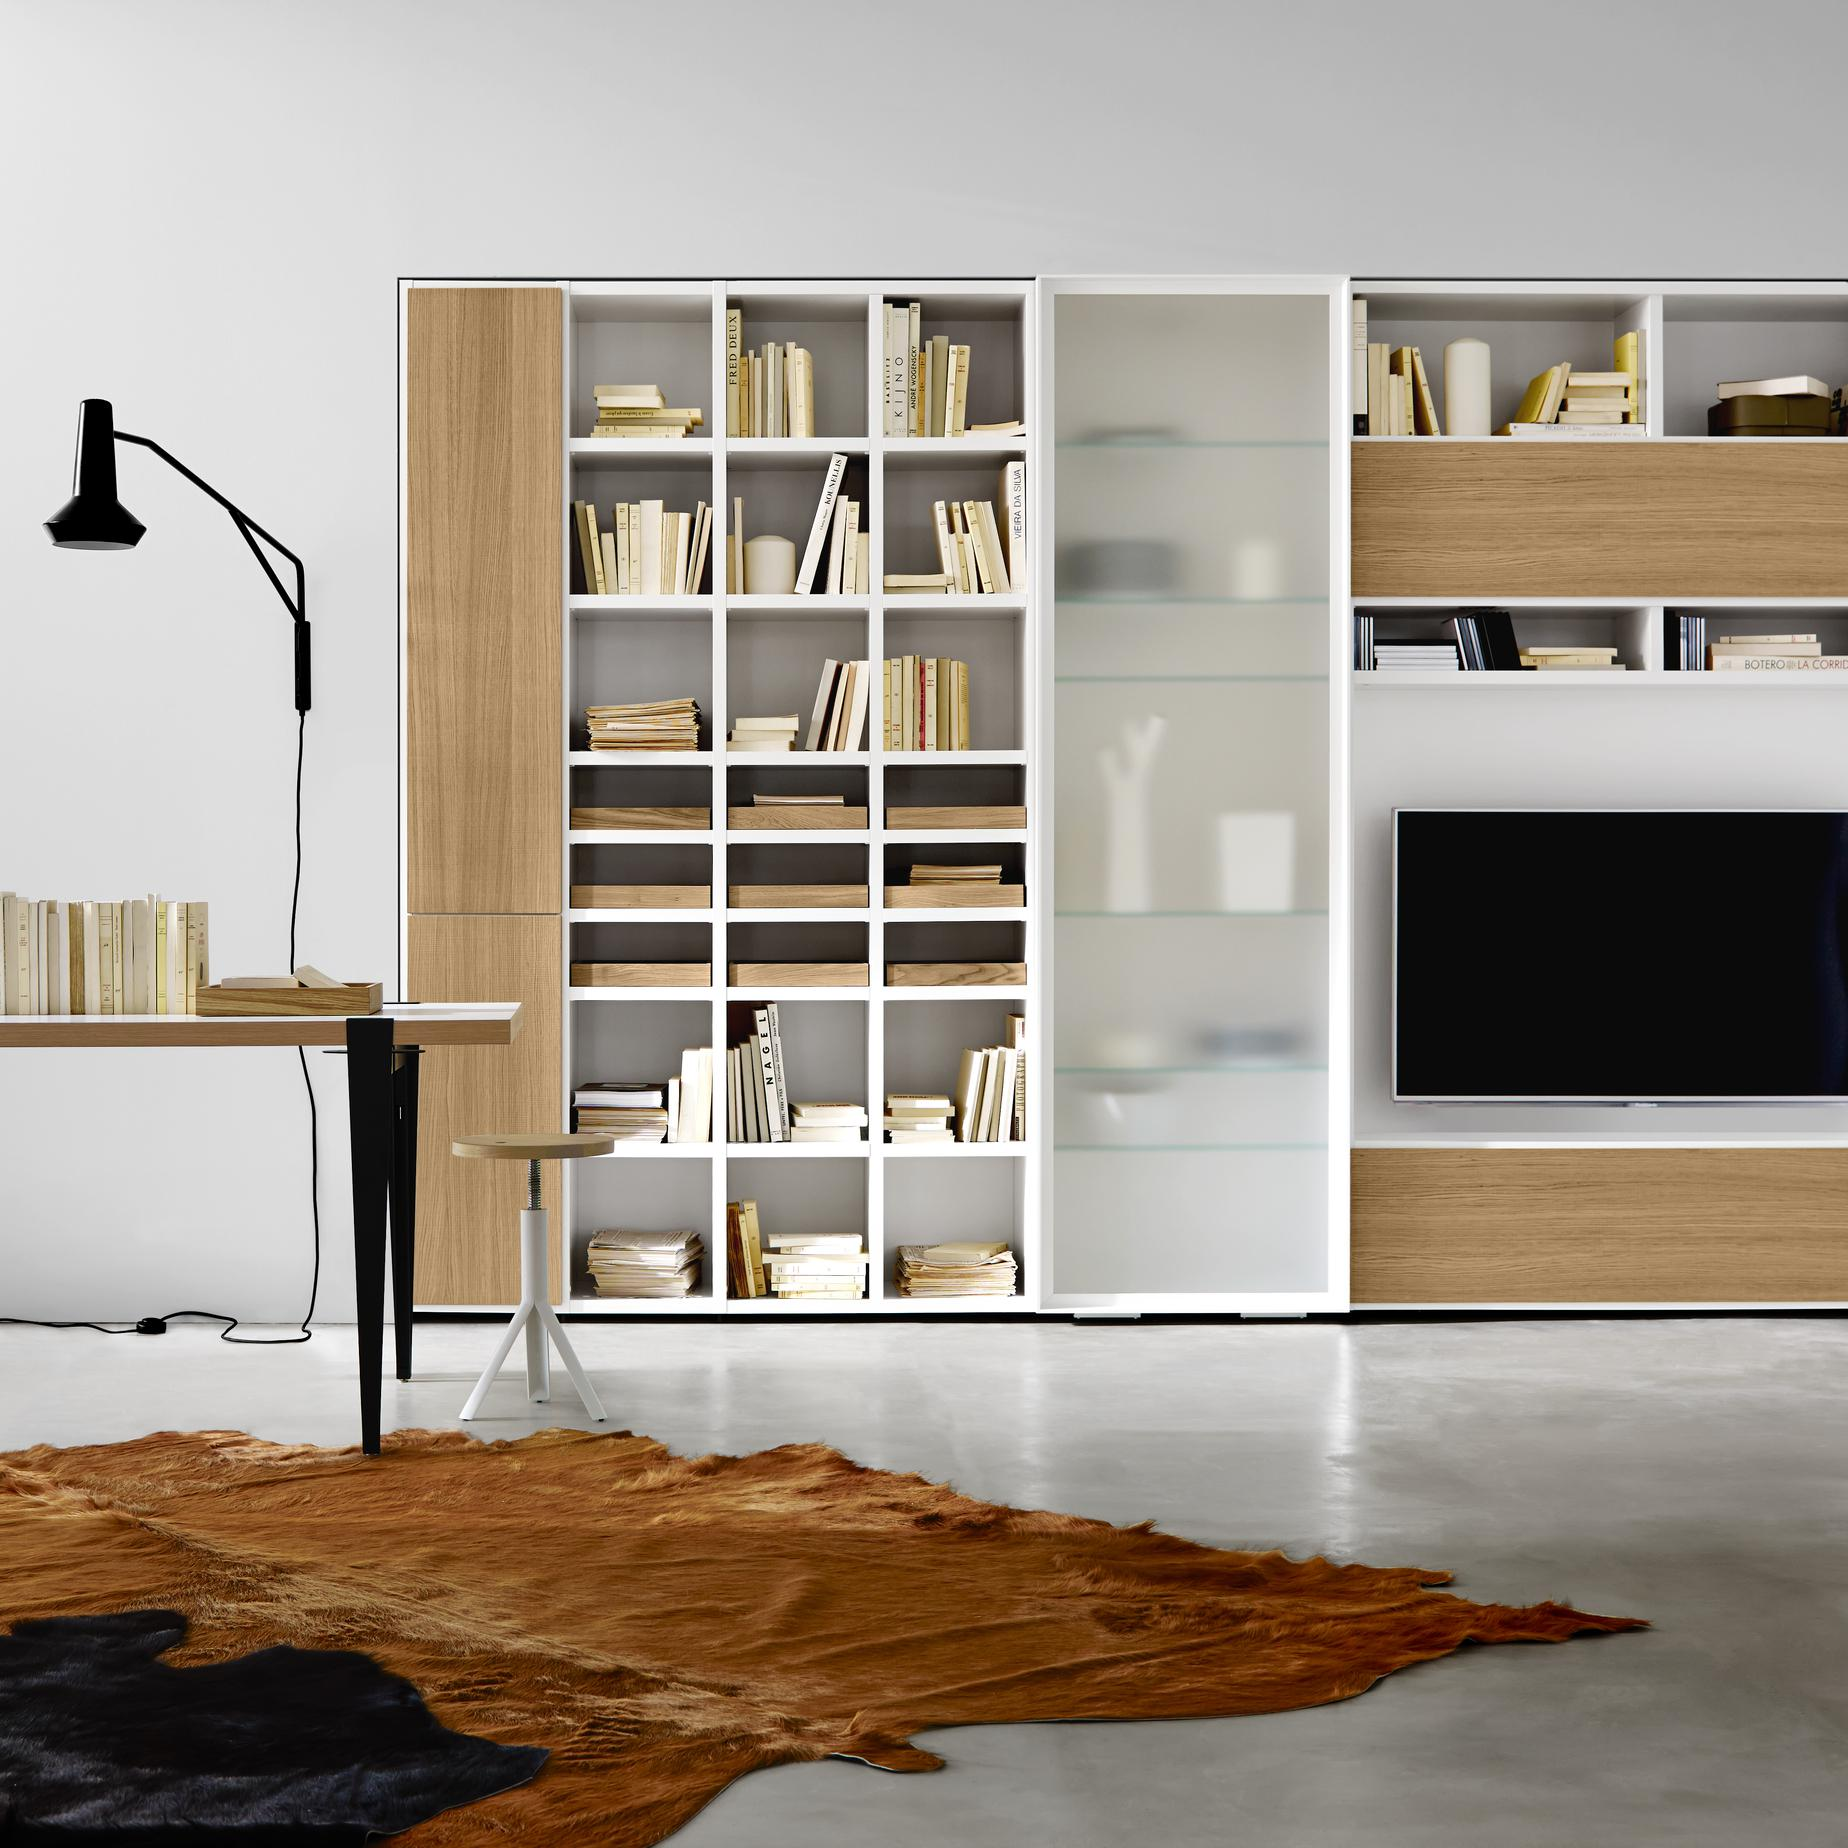 et cetera media storage from designer pagnon pelha tre ligne roset official site. Black Bedroom Furniture Sets. Home Design Ideas